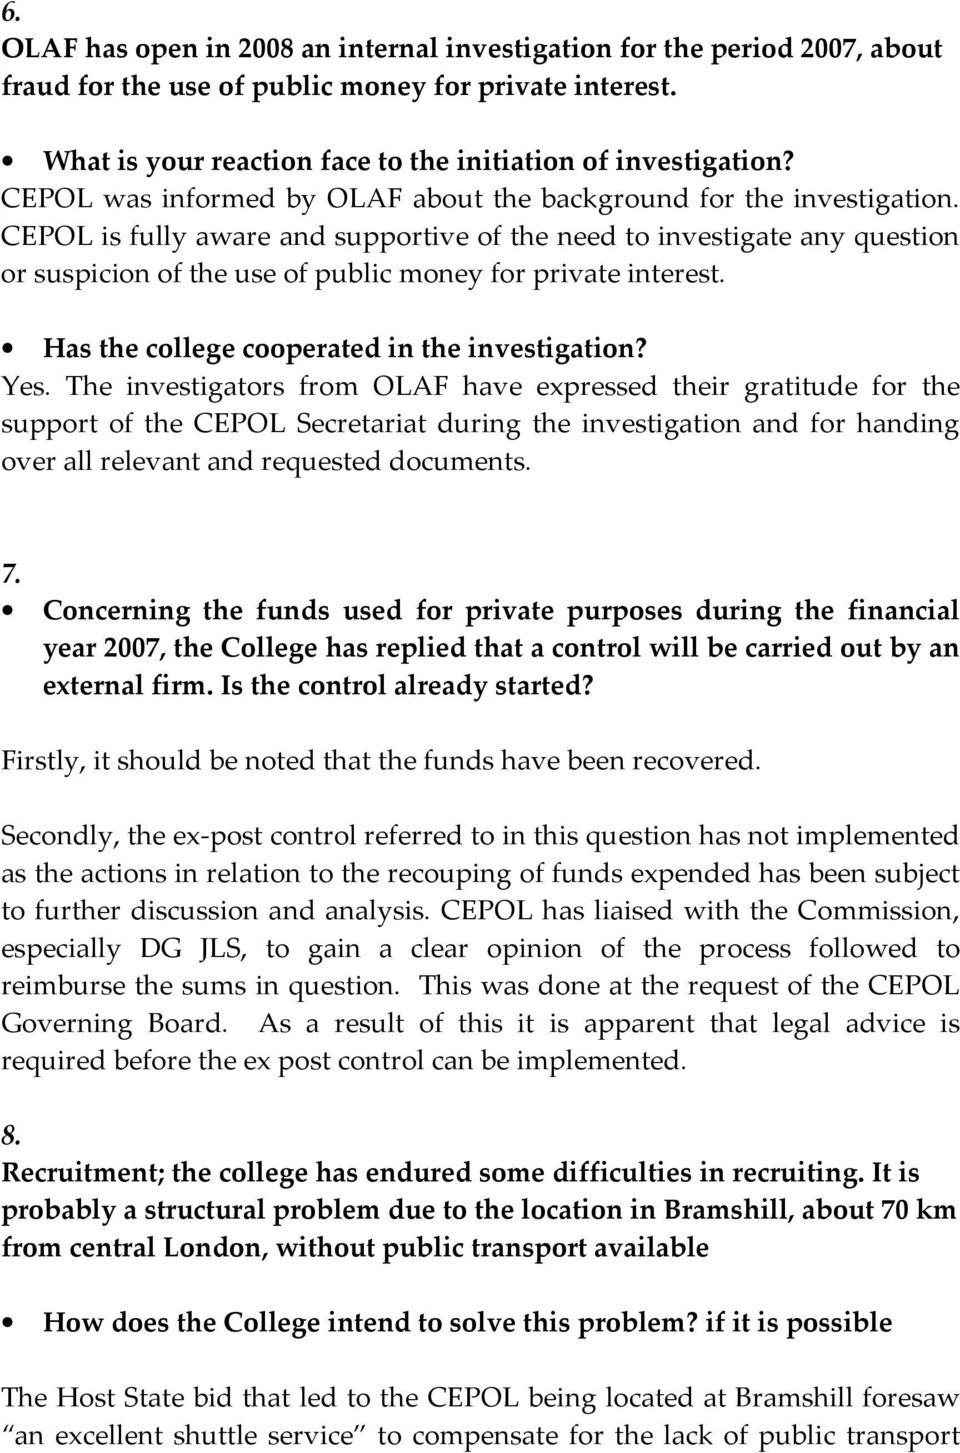 CEPOL is fully aware and supportive of the need to investigate any question or suspicion of the use of public money for private interest. Has the college cooperated in the investigation? Yes.